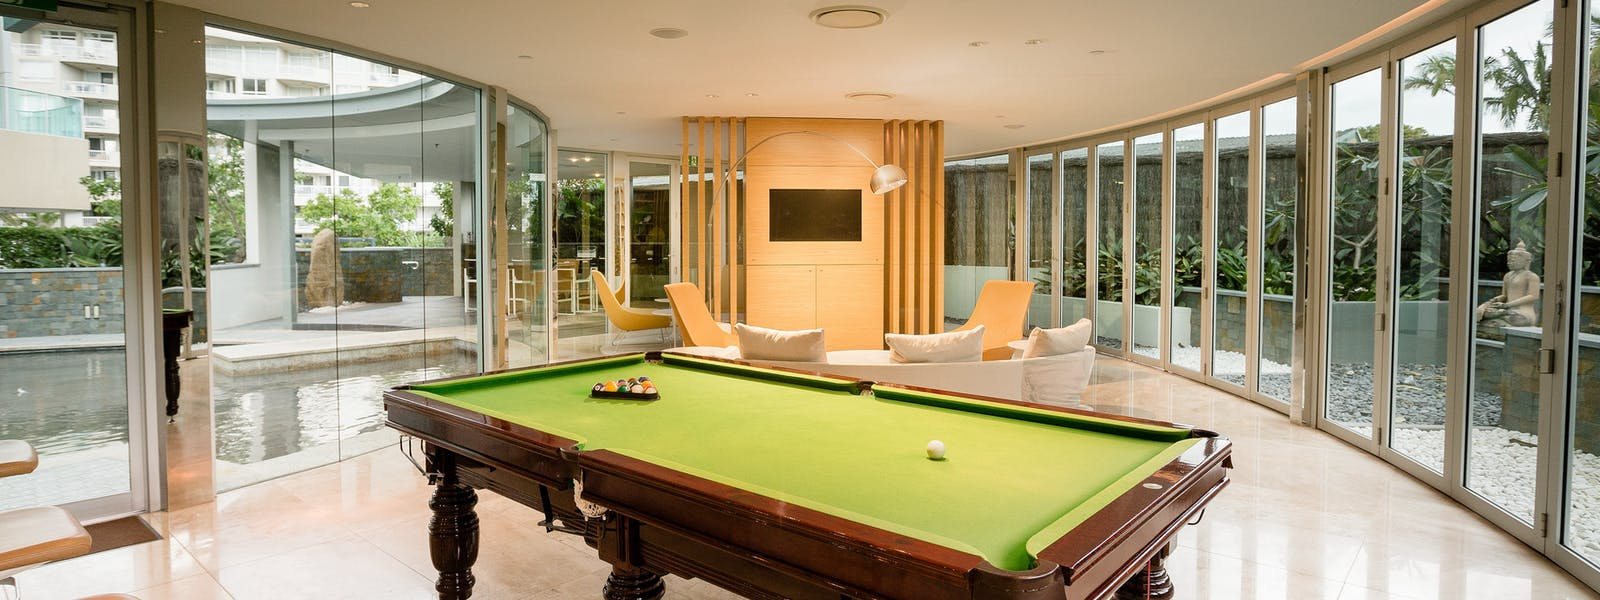 Executive Lounge Pool Table